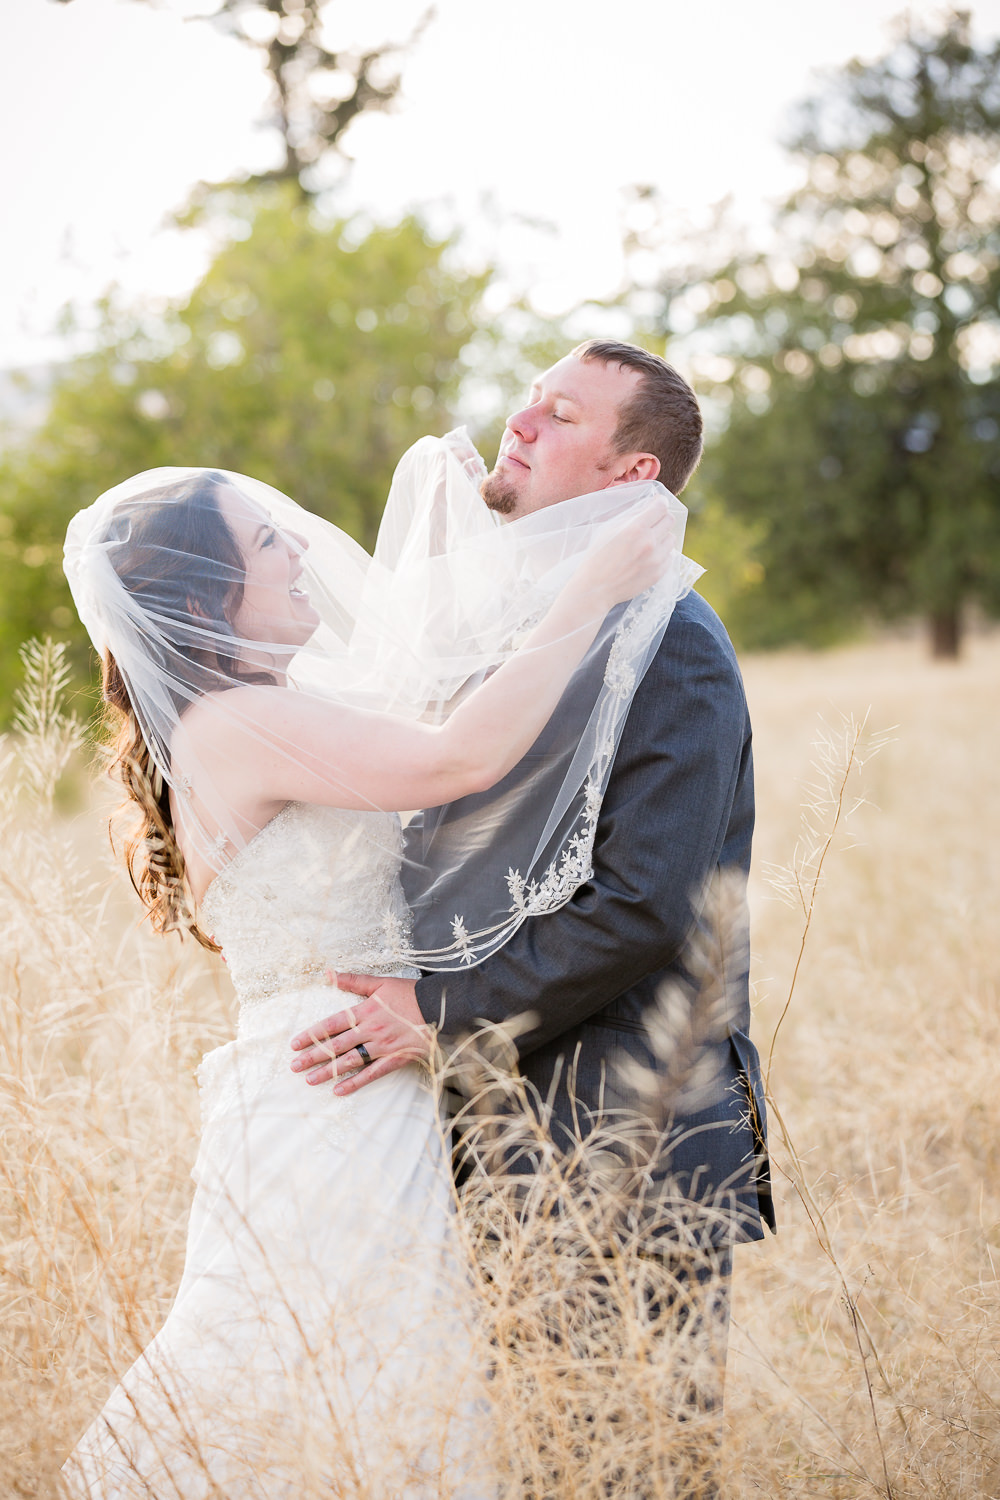 heritage-hall-missoula-montana-bride-gives-groom-veil-beard.jpg